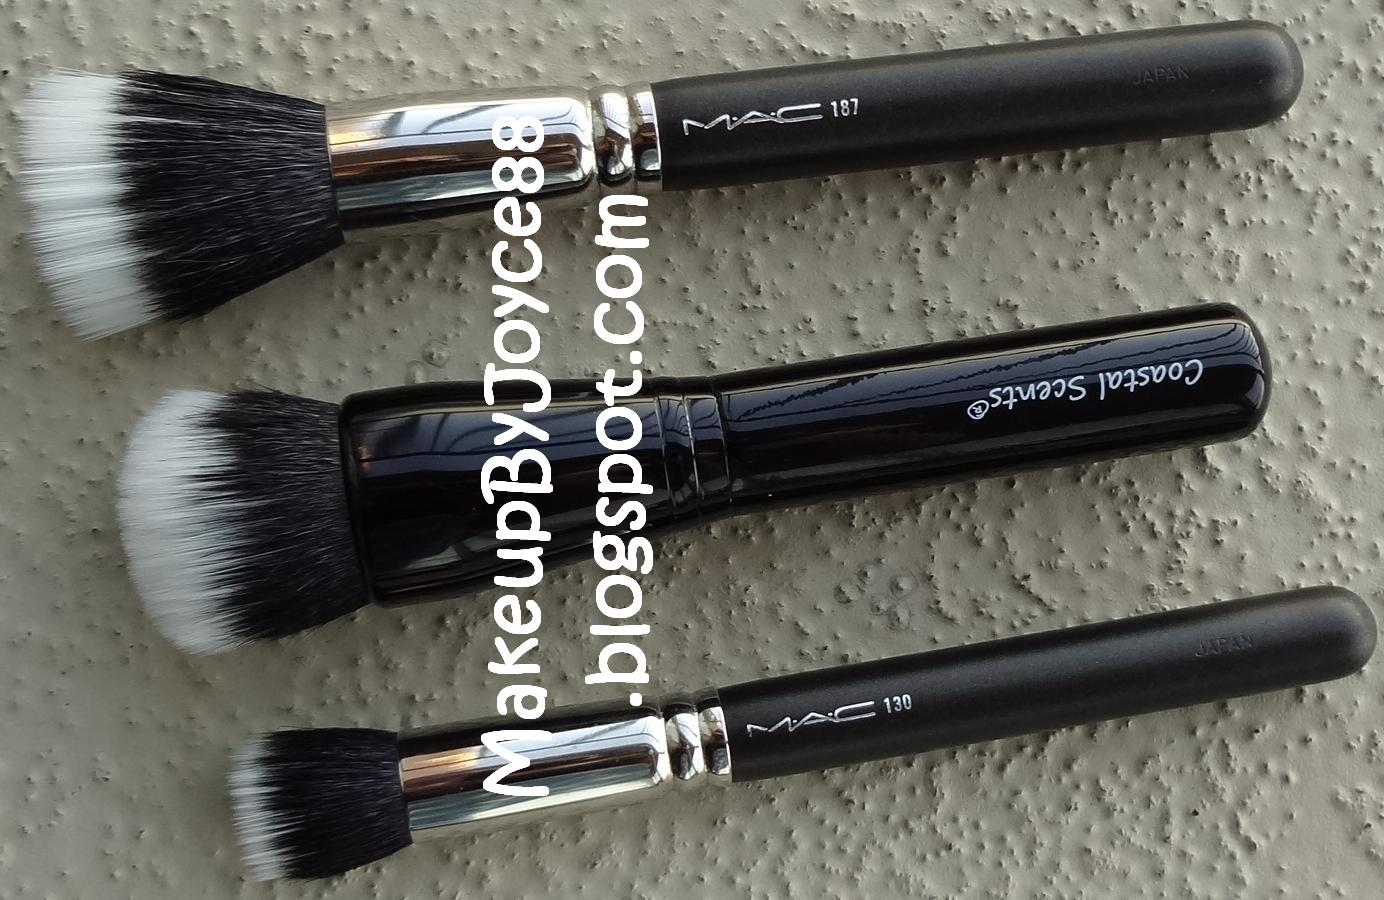 coastal scents brushes. from top to bottom: mac 187 brush, coastal scents divine powder buffer 131 brush brushes